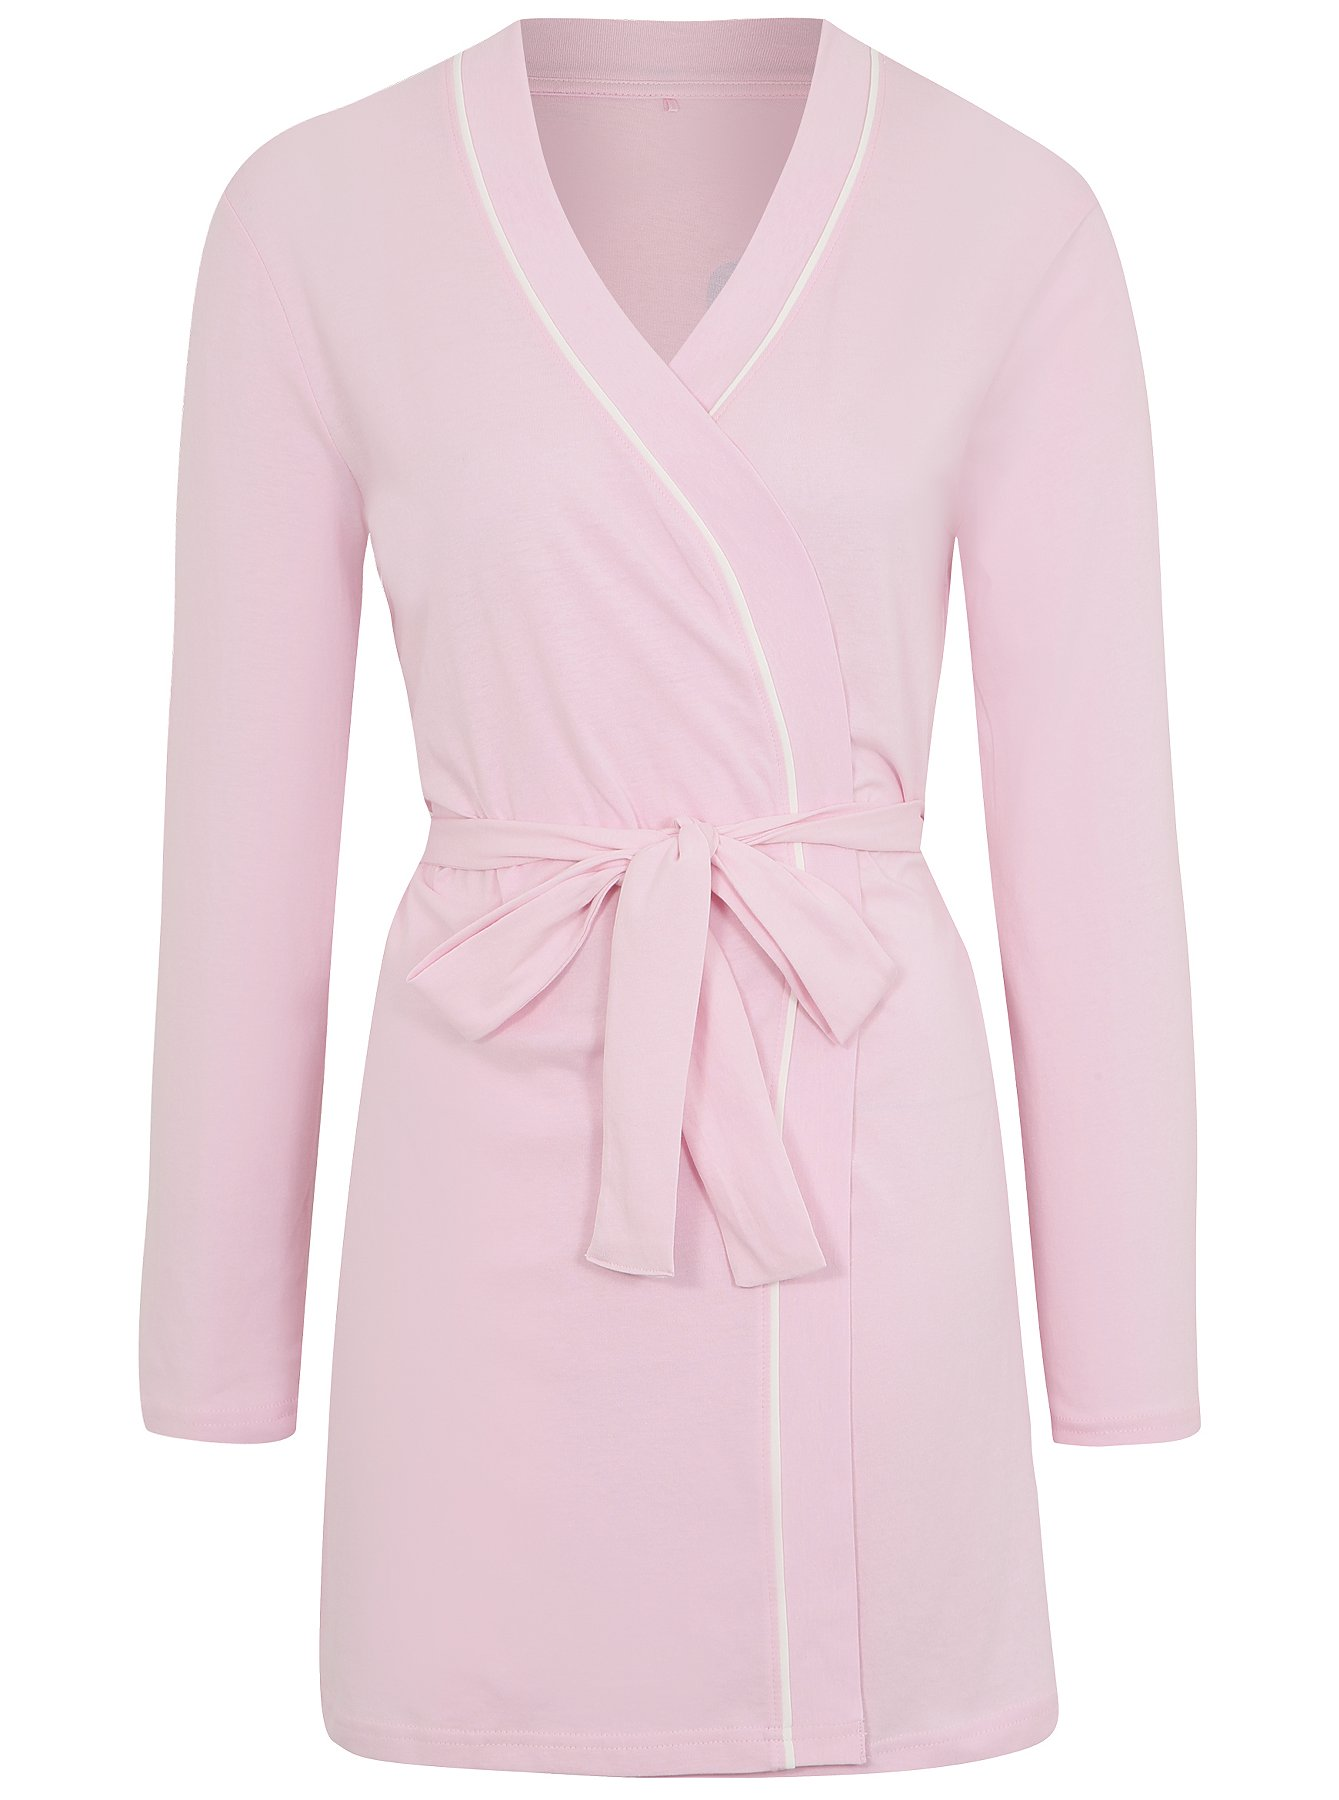 Women\'s Dressing Gowns & Wraps in Pink | Nightwear & Slippers ...